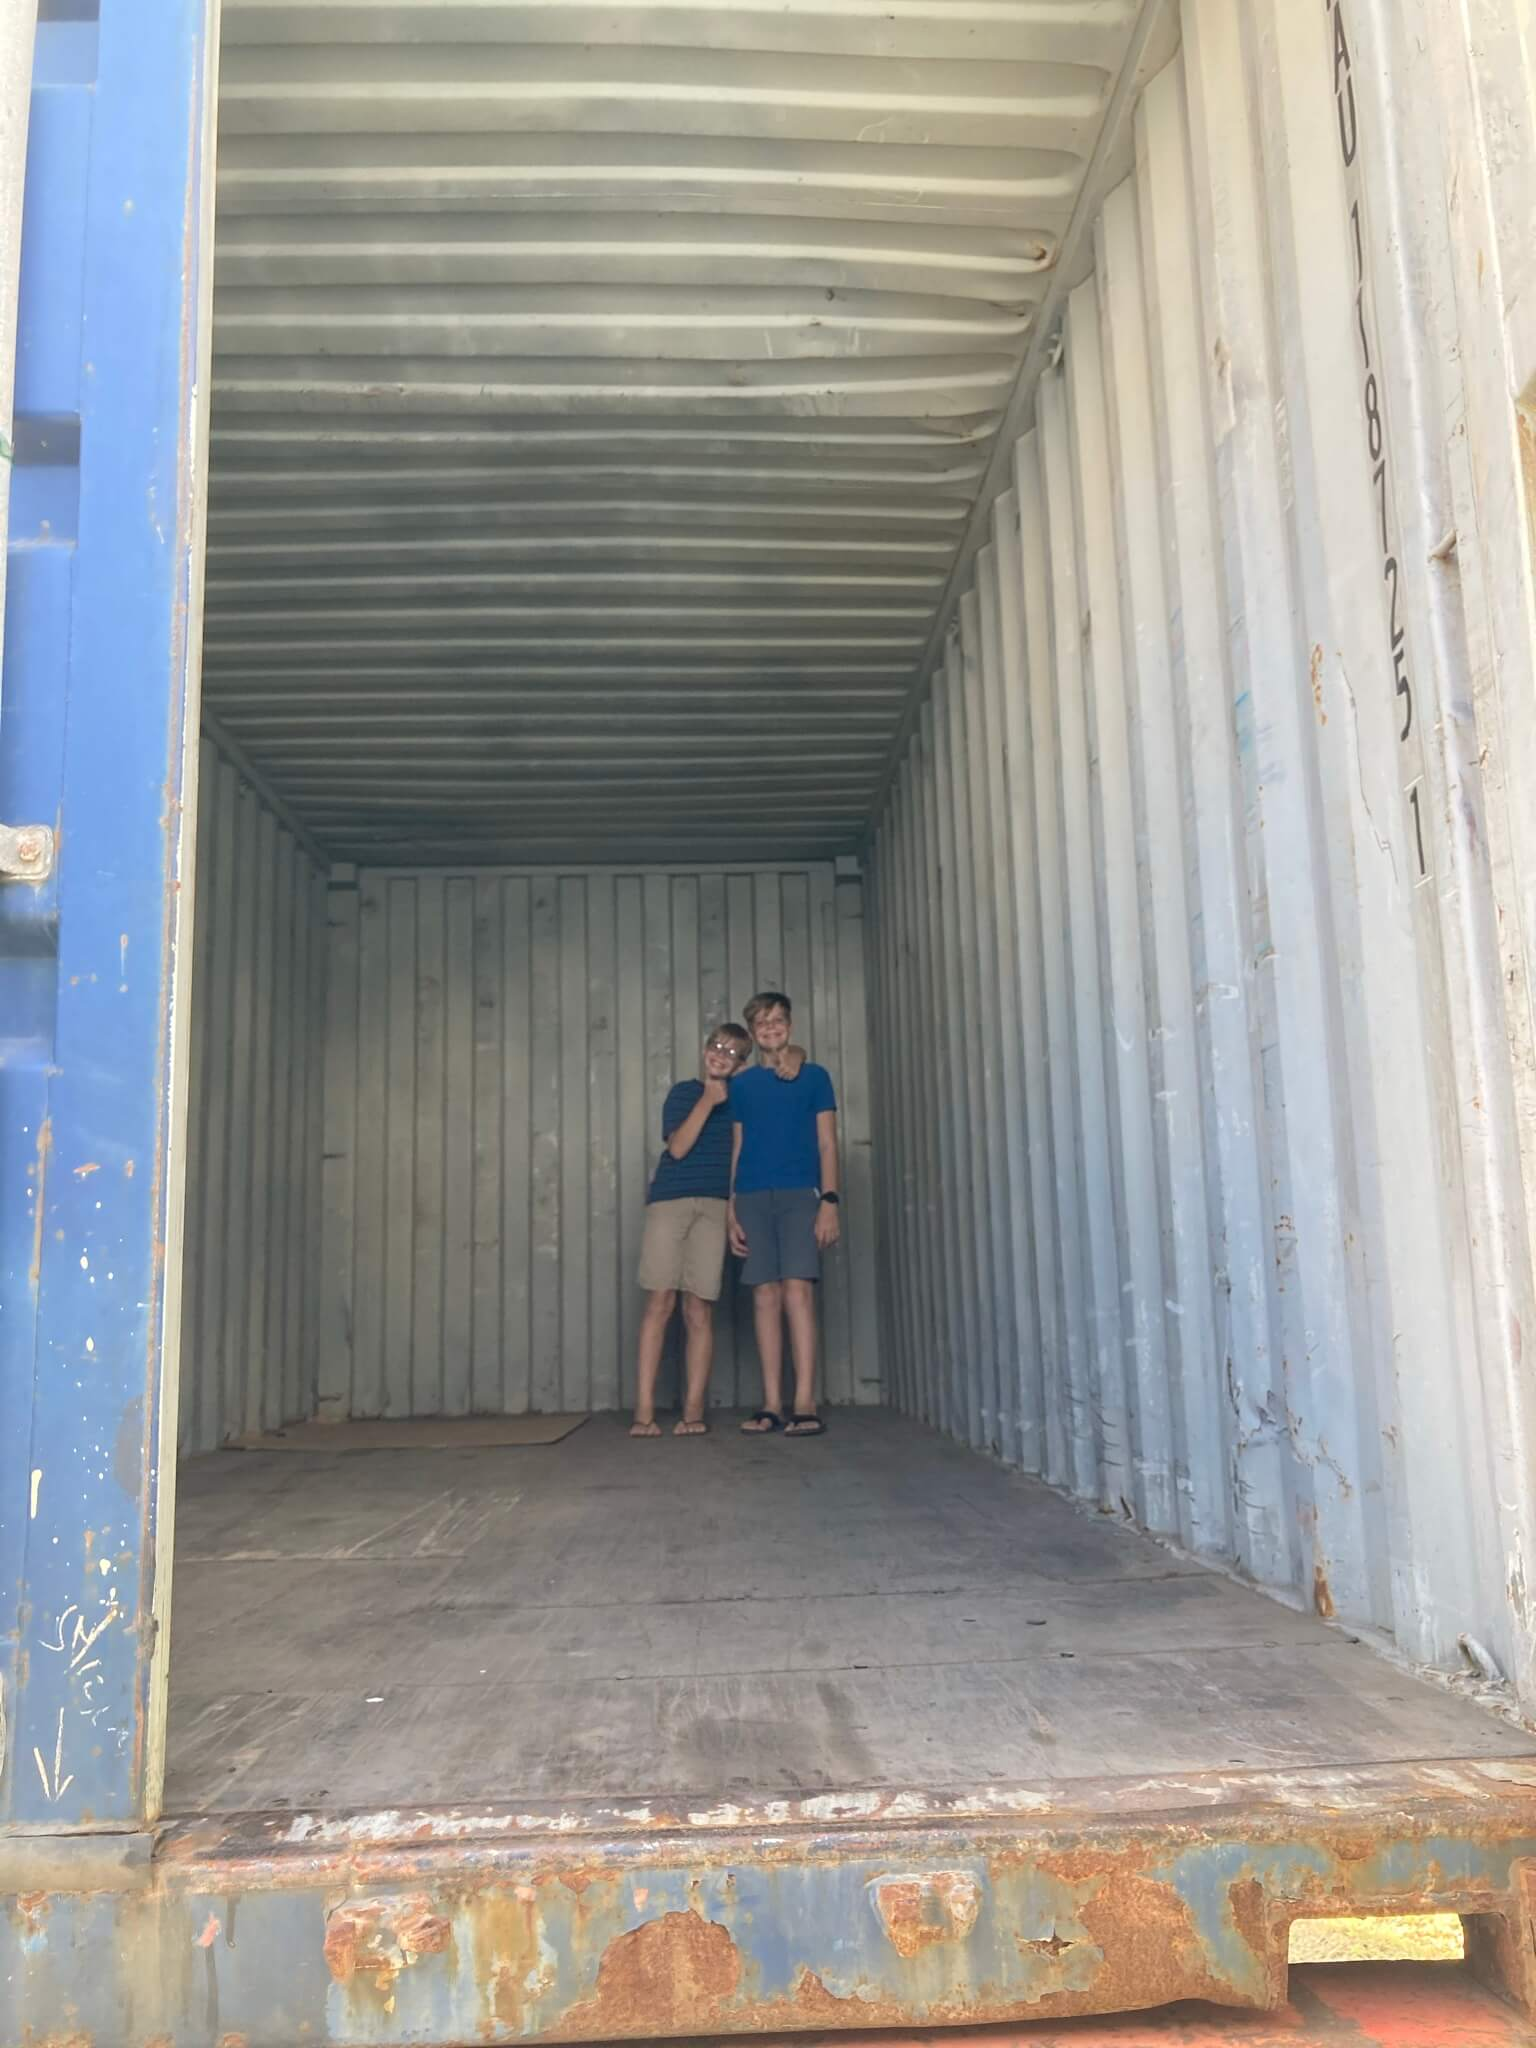 Boys in the Empty Container